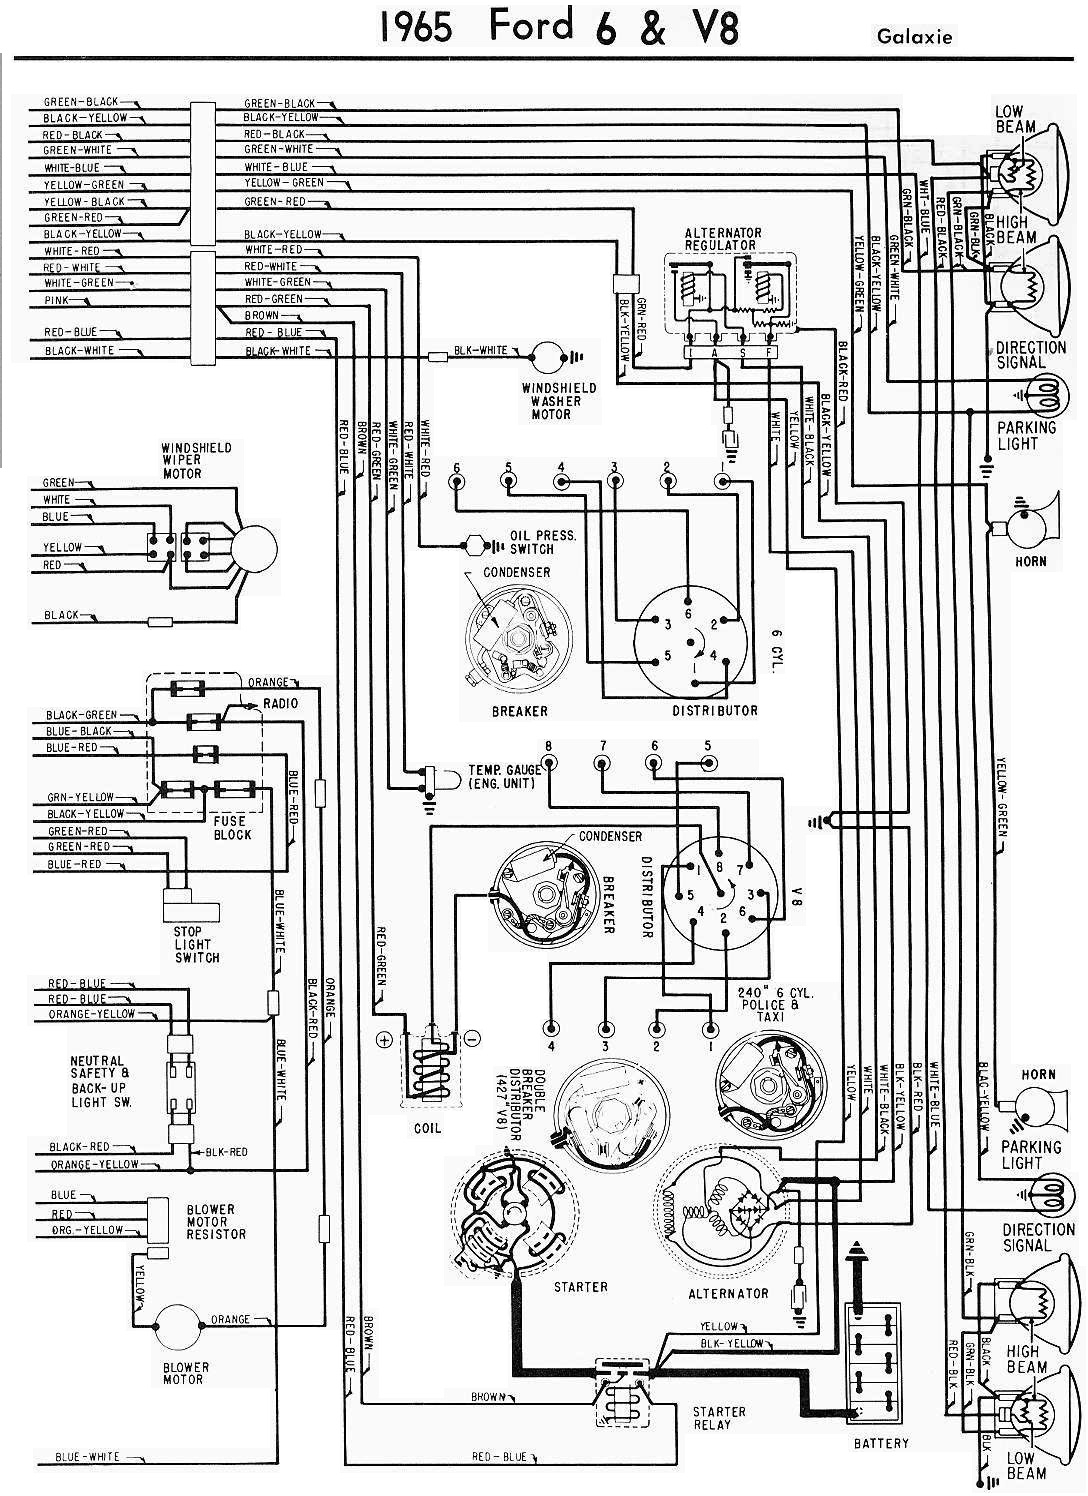 1966 Mustang Distributor Wiring Diagram 1965 Ford Galaxie Complete Electrical Wiring Diagram Part